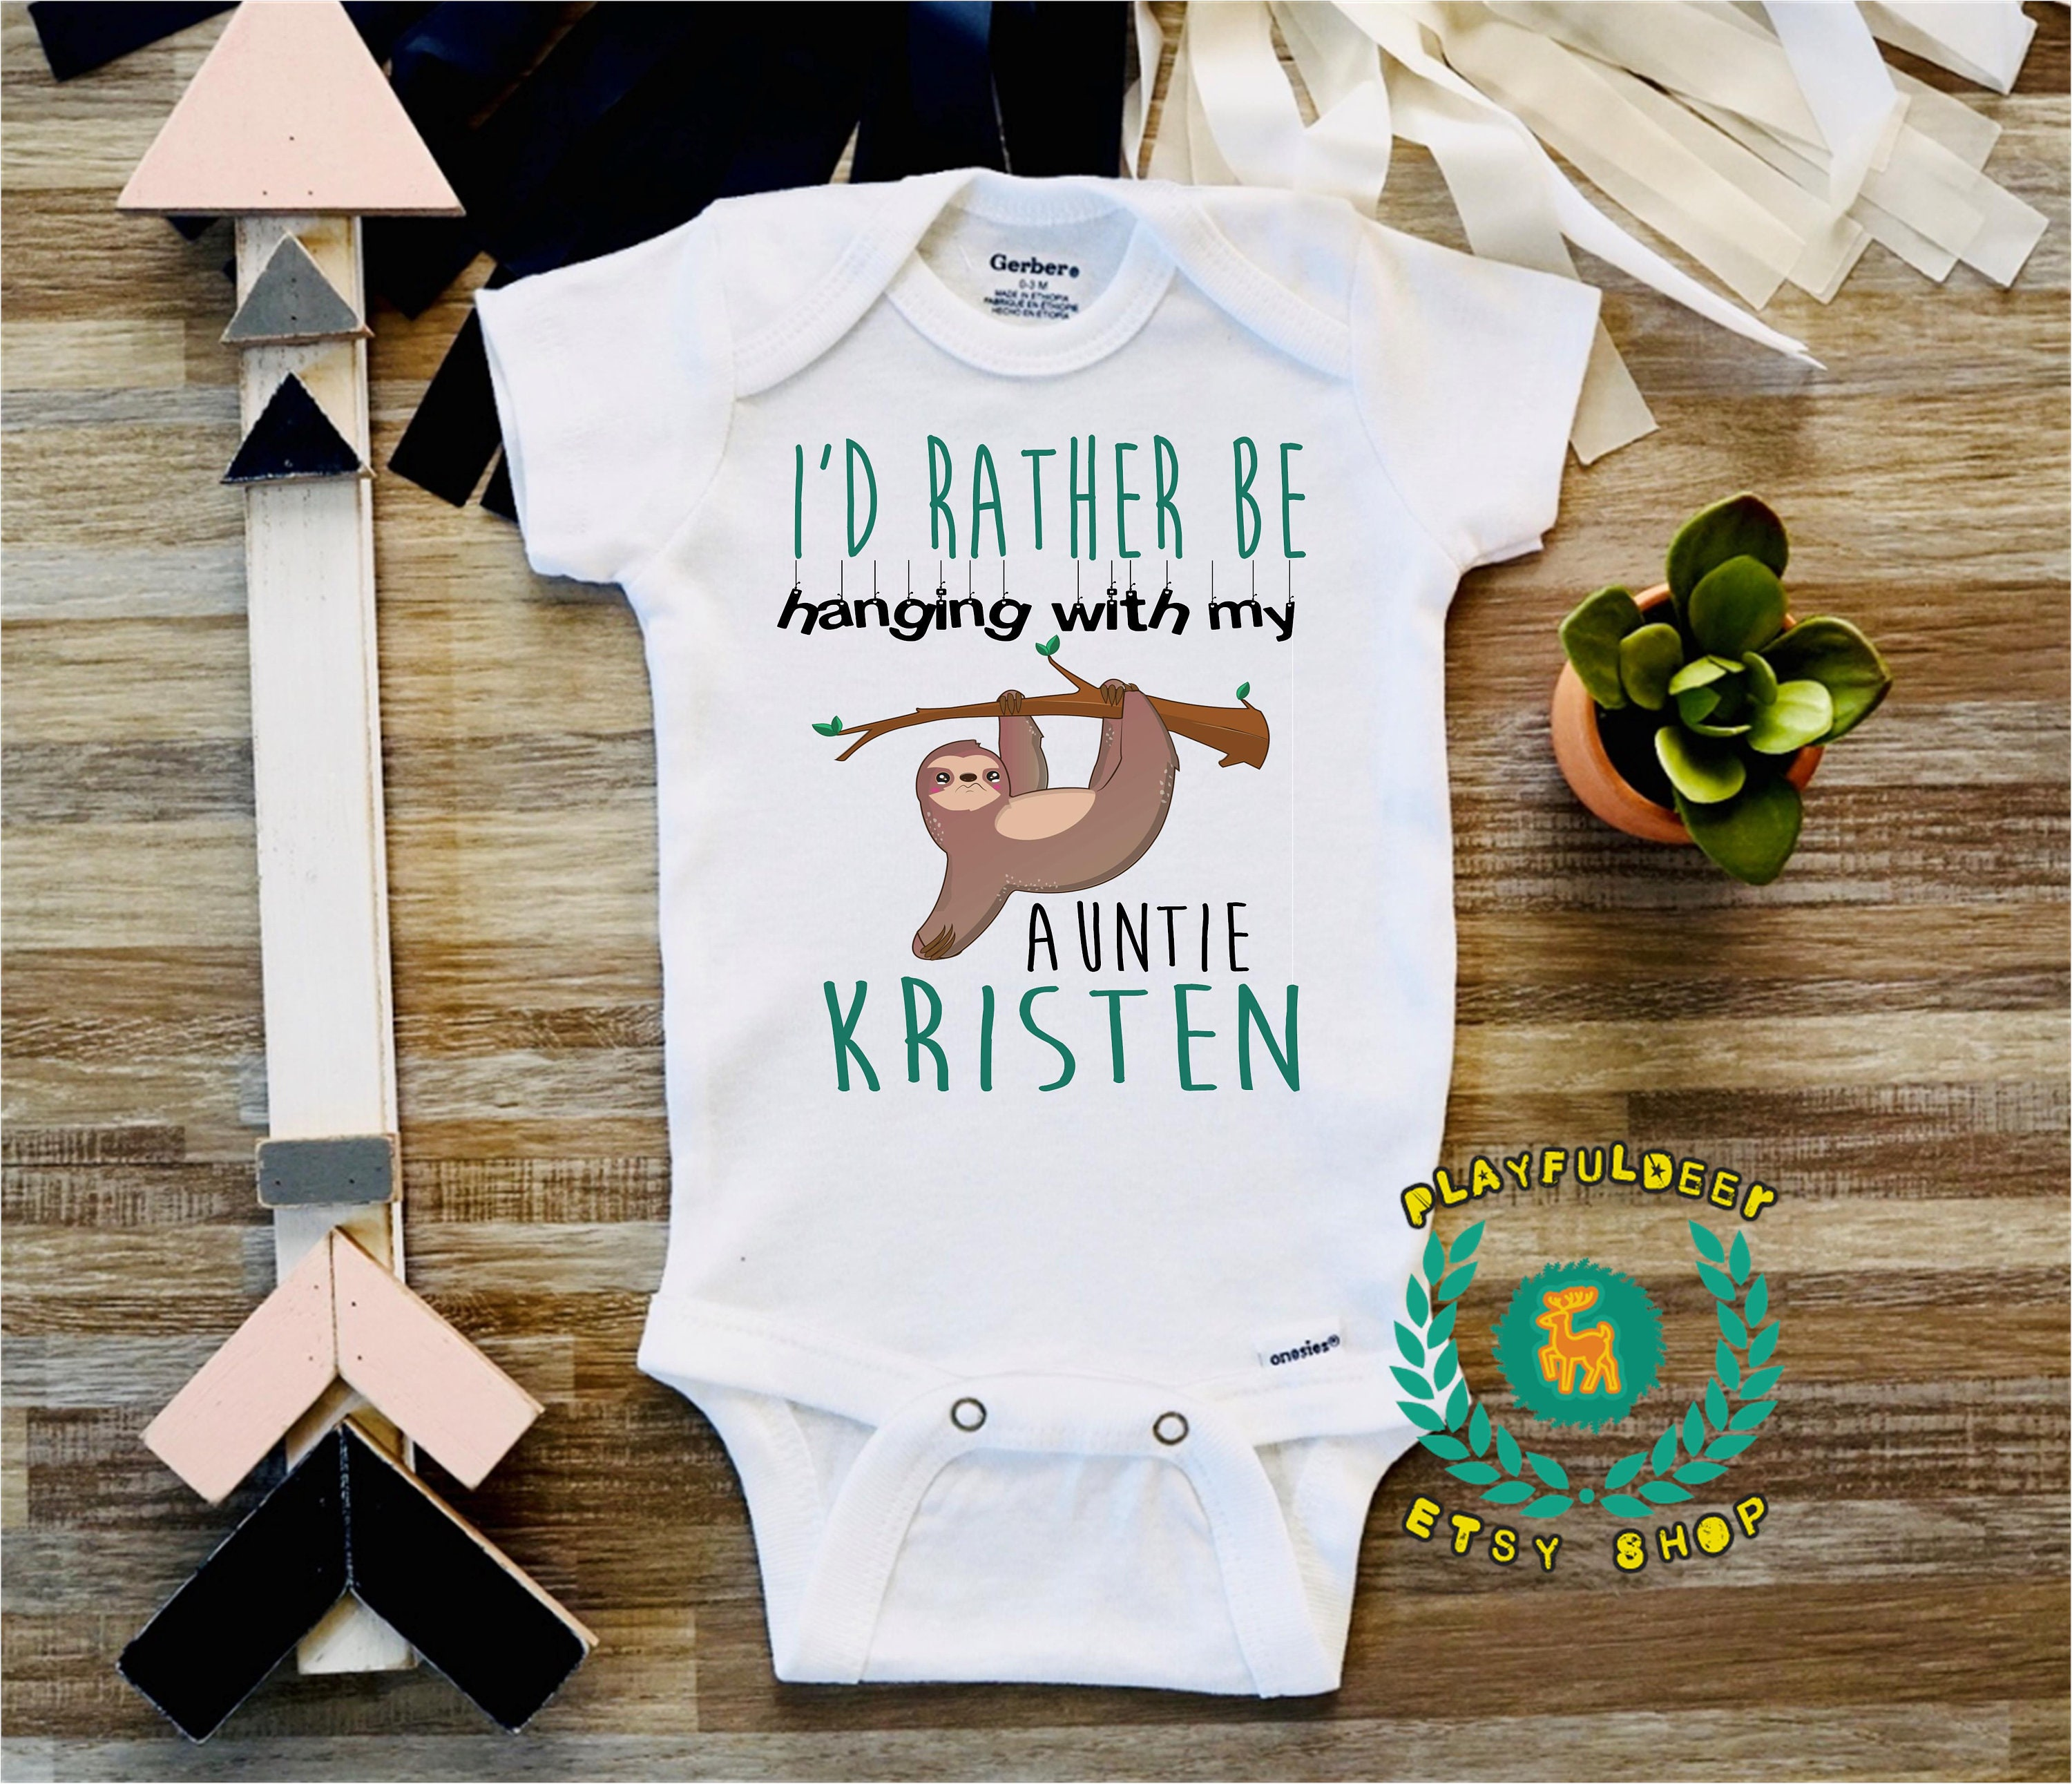 I D Rather Be Hanging With My Aunt Funny Baby Sloth Etsy